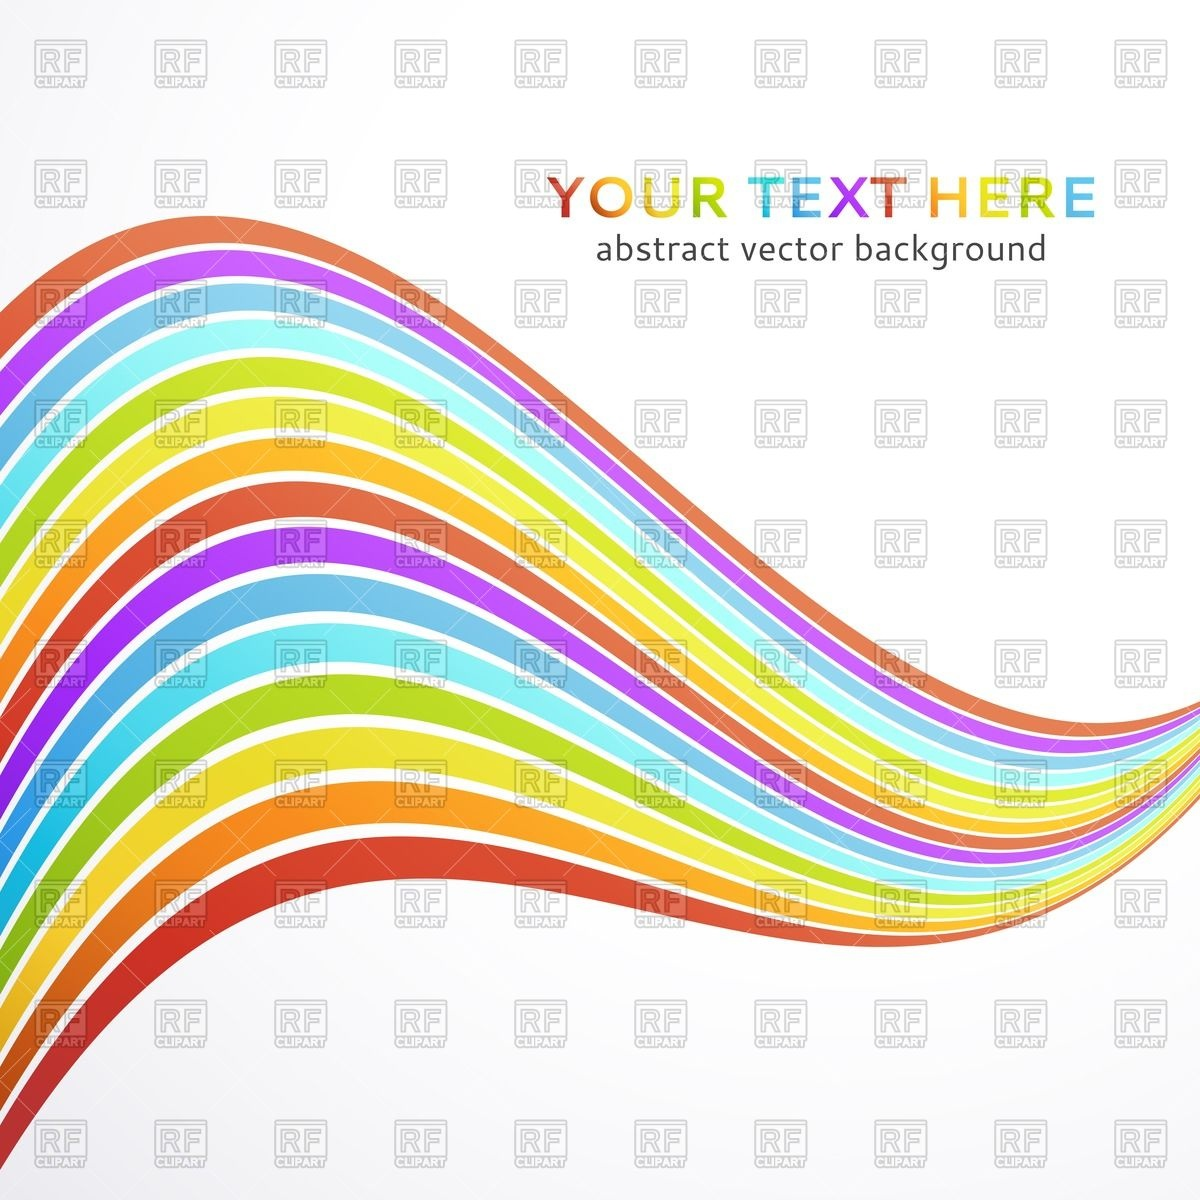 Abstract background/banner with wave of rainbow Vector Image.